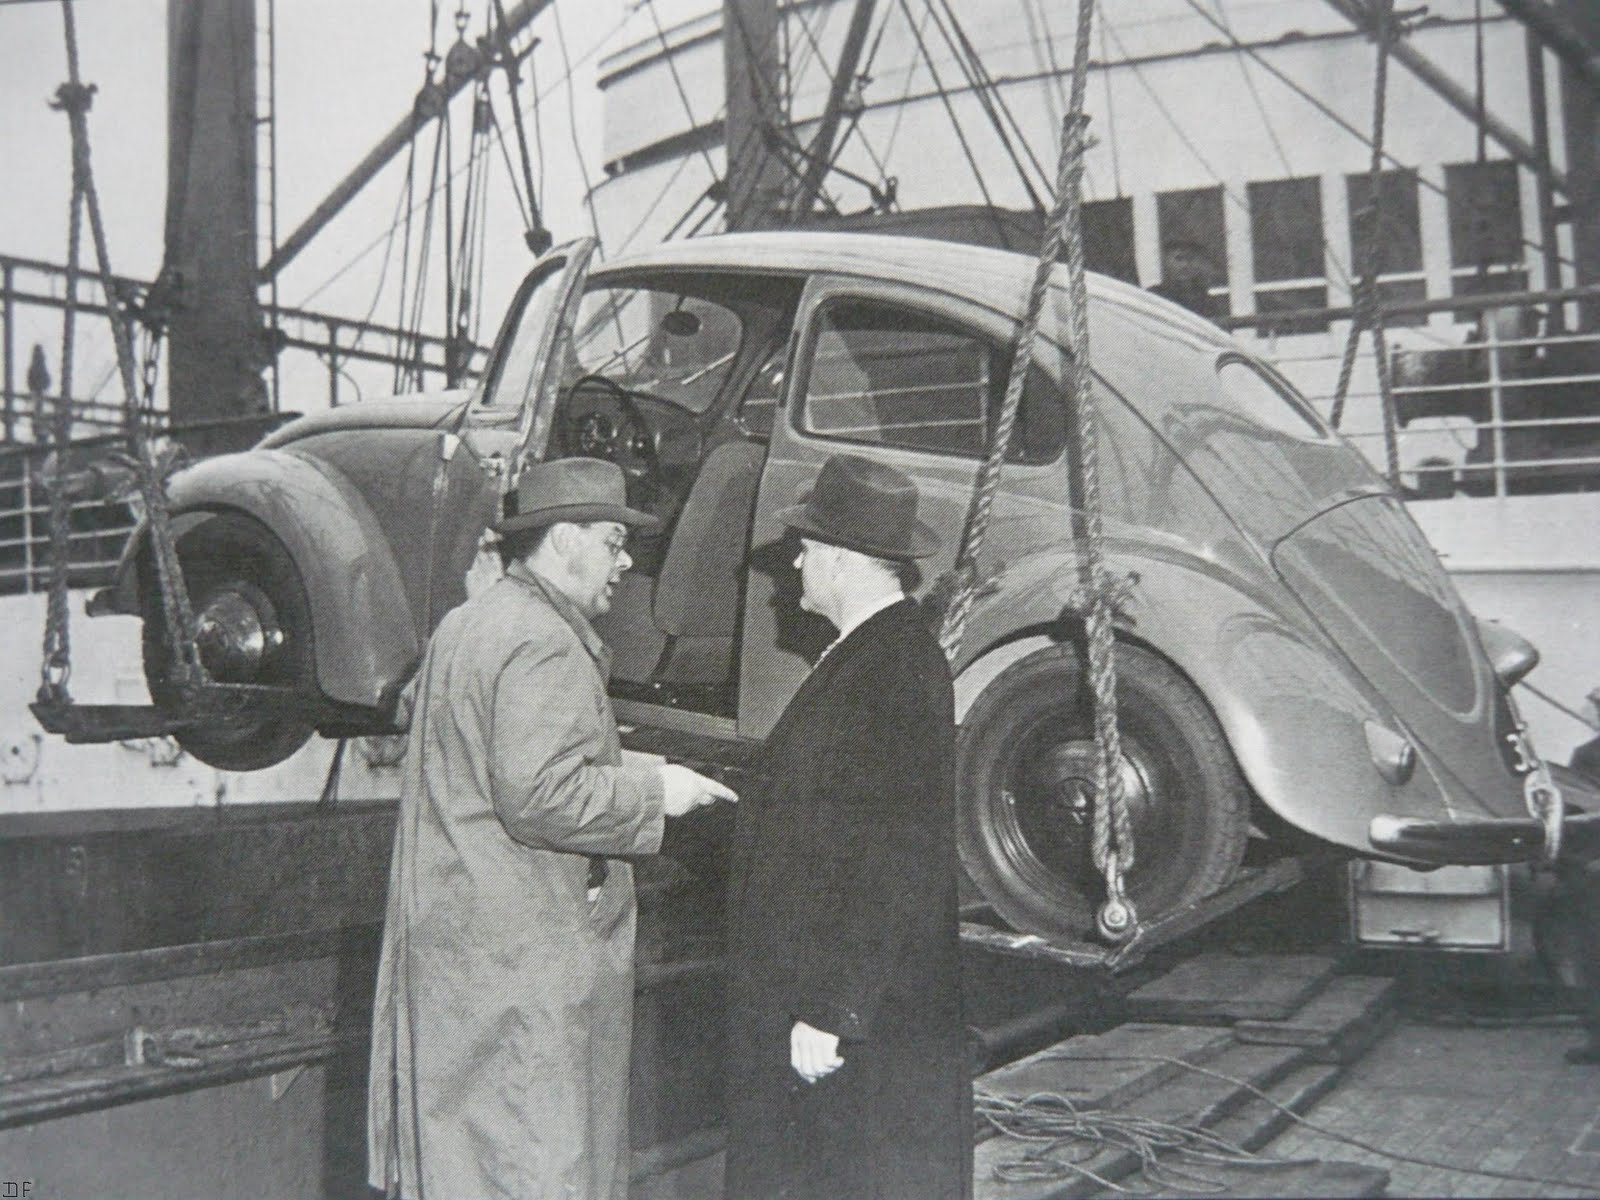 1949 - Pon shipped the first Beetle to the US